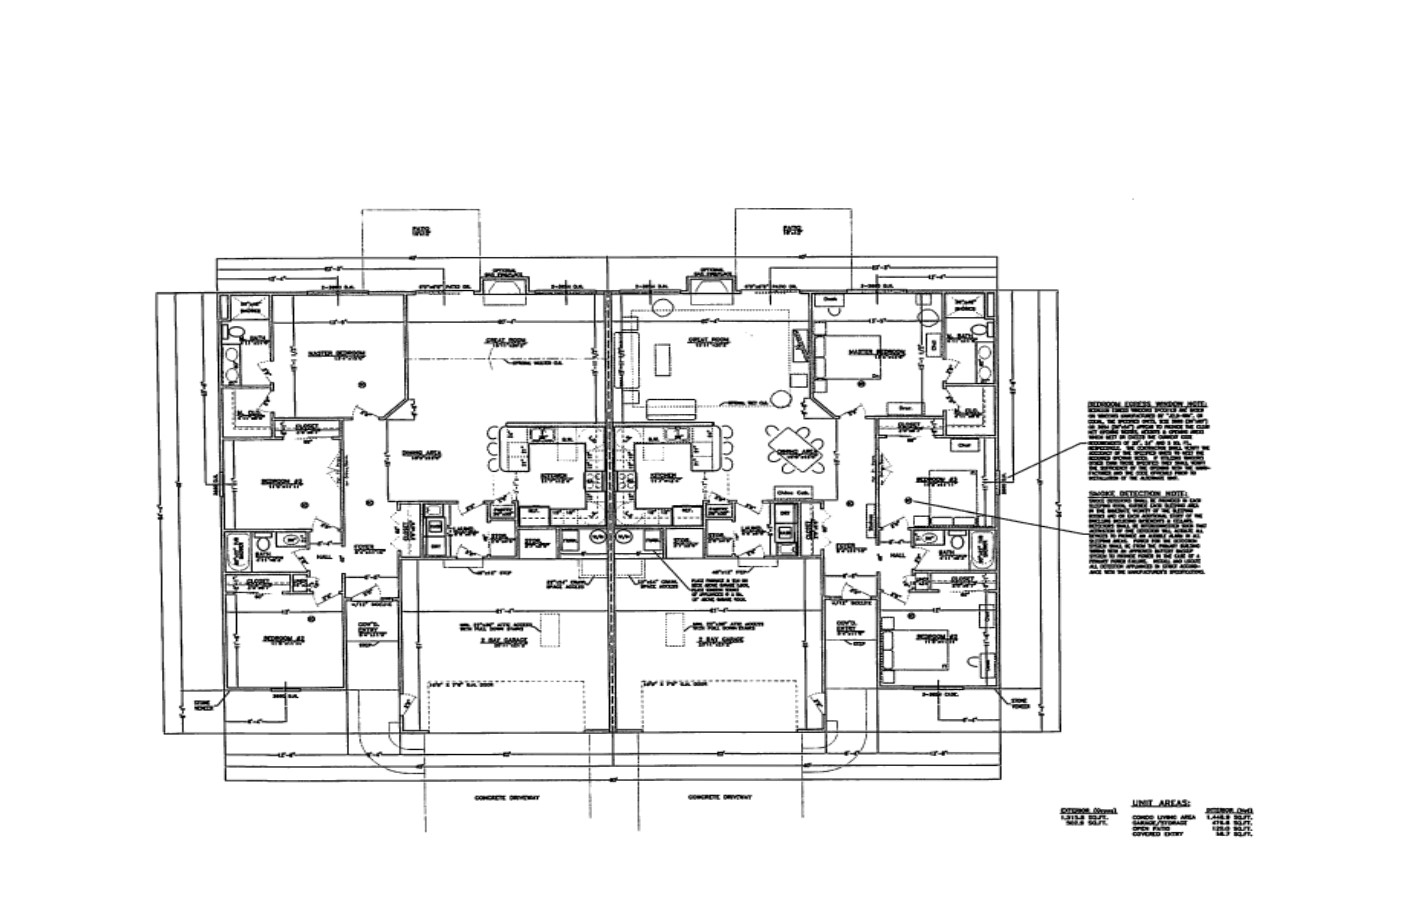 Floor Plan for Units Plan A